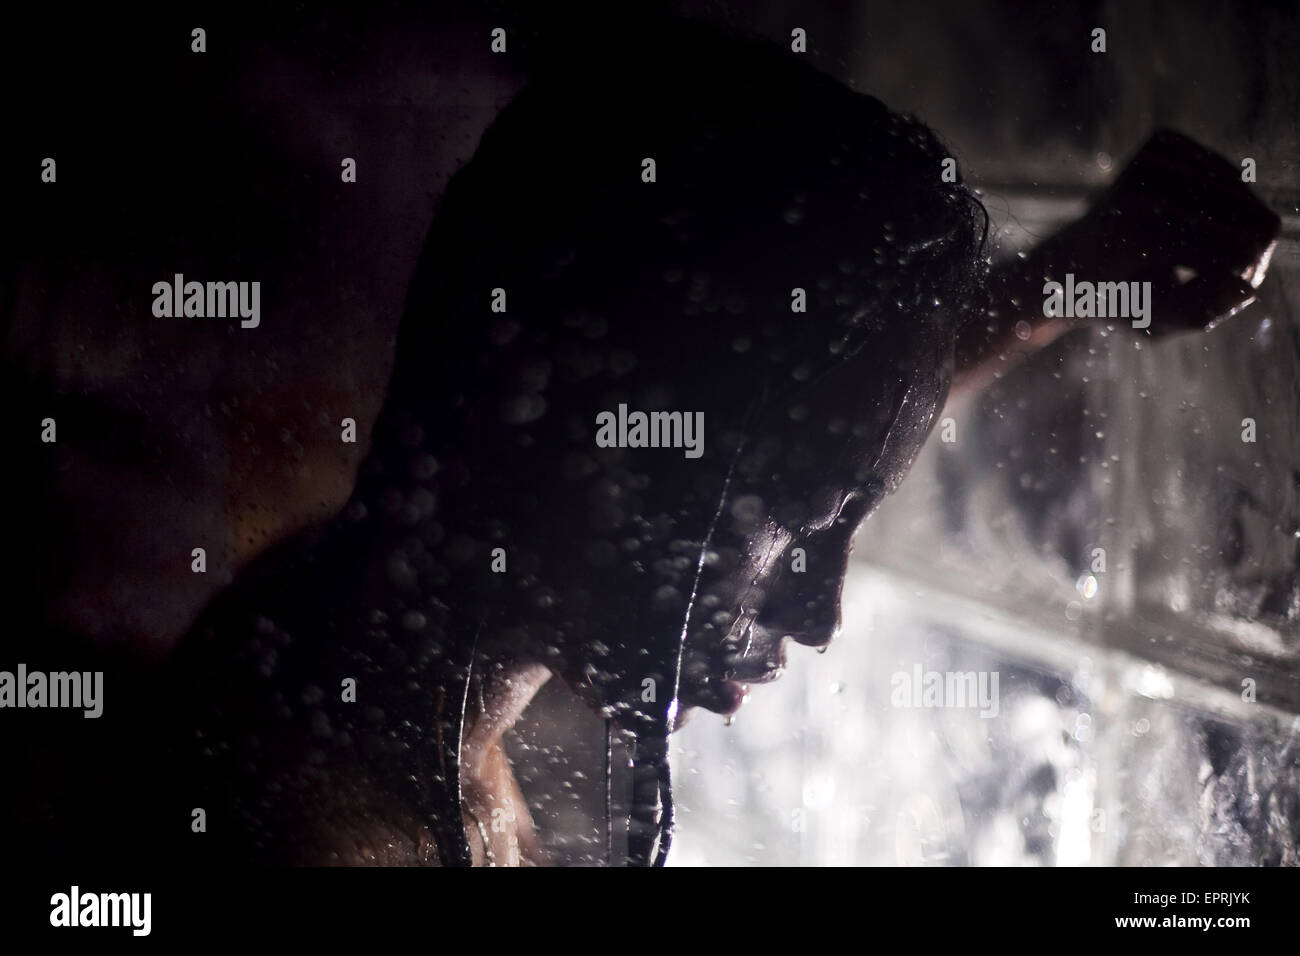 A young woman photographed in the shower in Baltimore, Maryland on December 1. - Stock Image